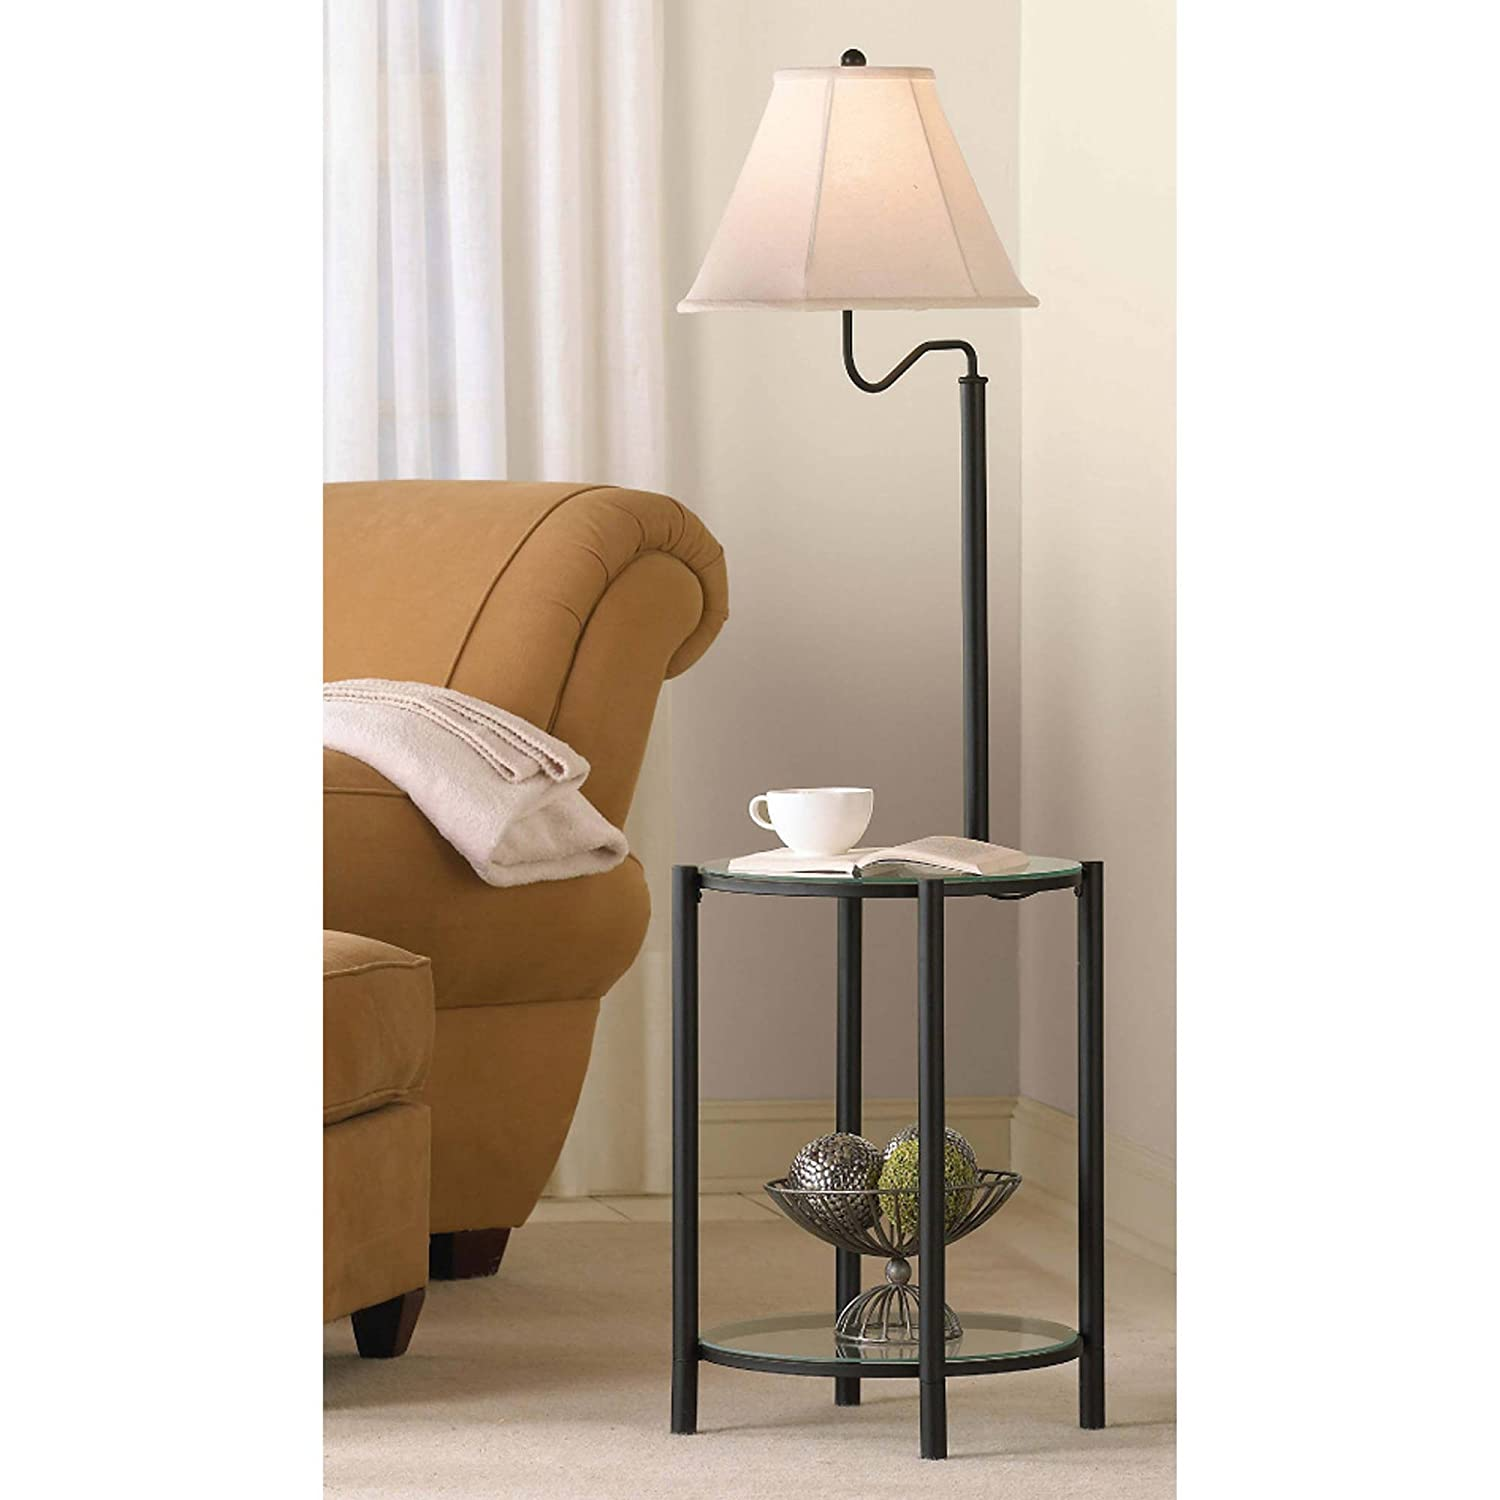 Floor Lamp With Glass End Table In Matte Black, CFL Bulb Included